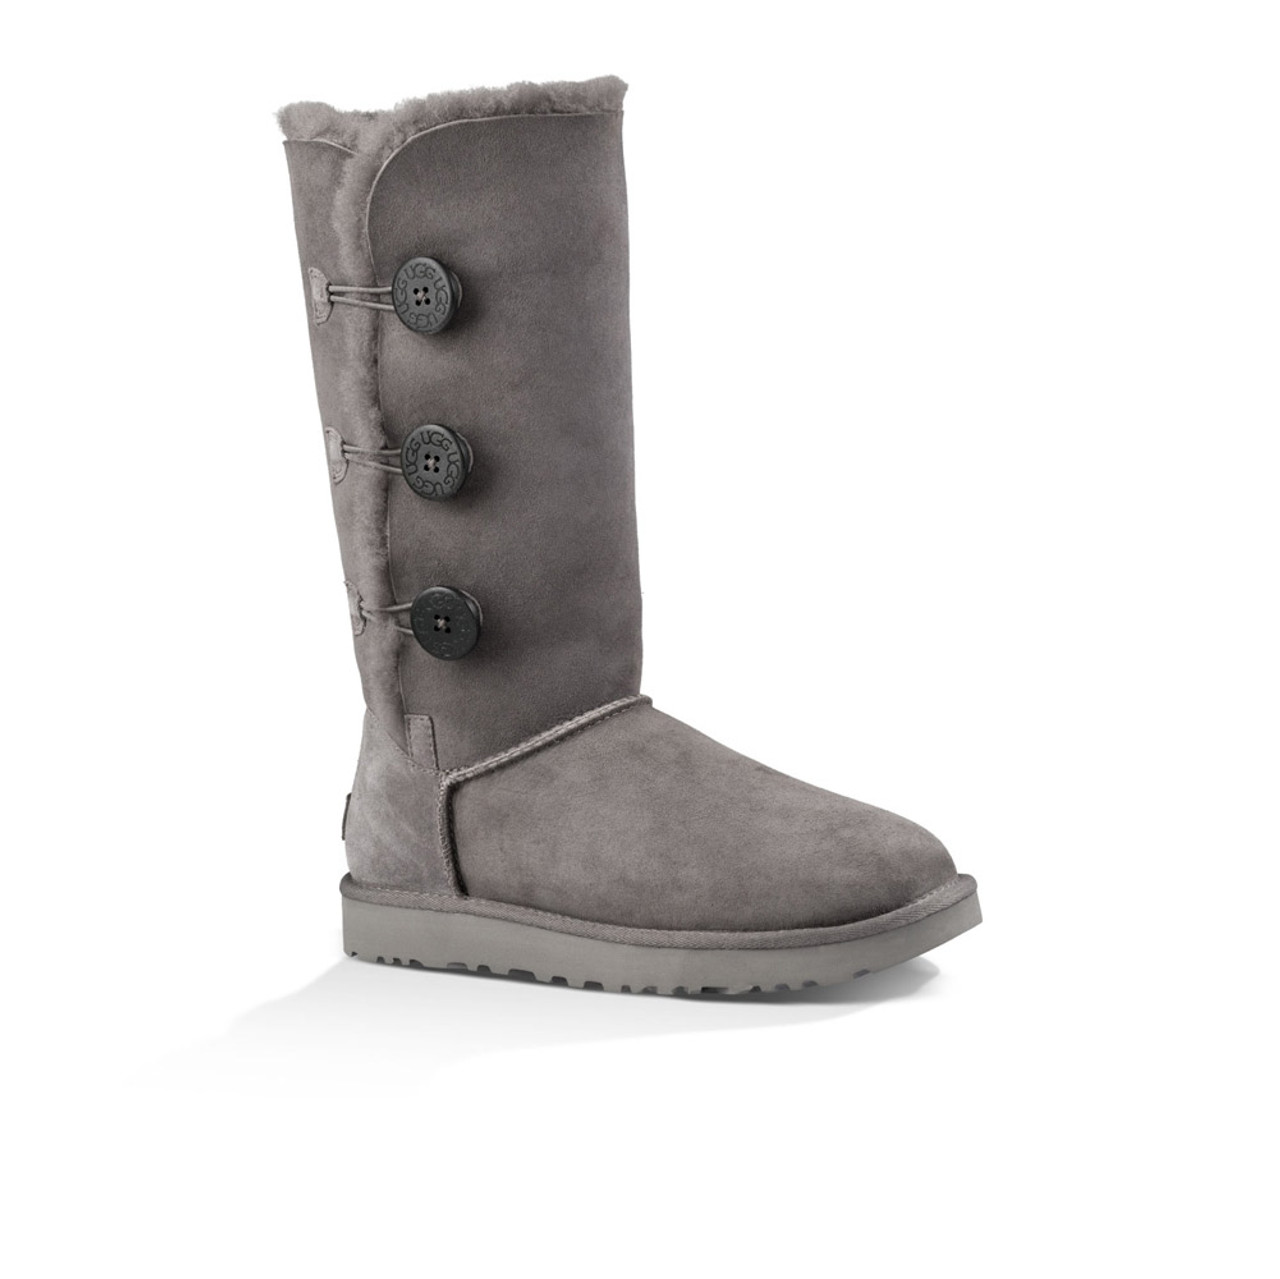 UGG Women's Bailey Button Triplet II Boot Grey - Shop now @ Shoolu.com